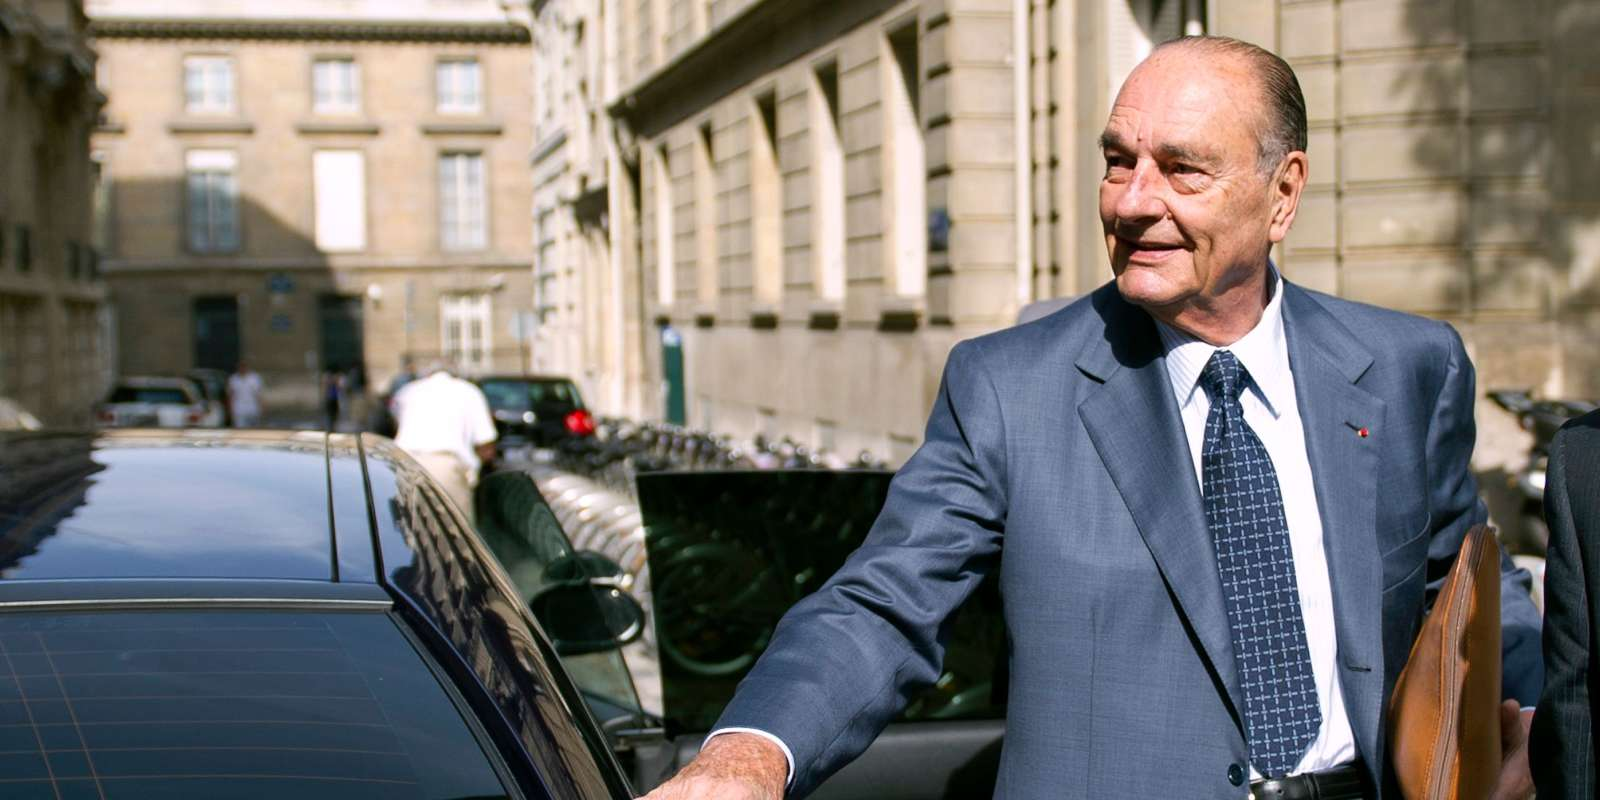 (FILES) In this file photo taken on September 01, 2011, French former president Jacques Chirac arrives at his office, in Paris, five days ahead of the start of his trial for corruption relating to his time as Paris mayor in the 1990s. Former French President Jacques Chirac has died at the age of 86, it was announced on September 26, 2019. / AFP / BERTRAND LANGLOIS